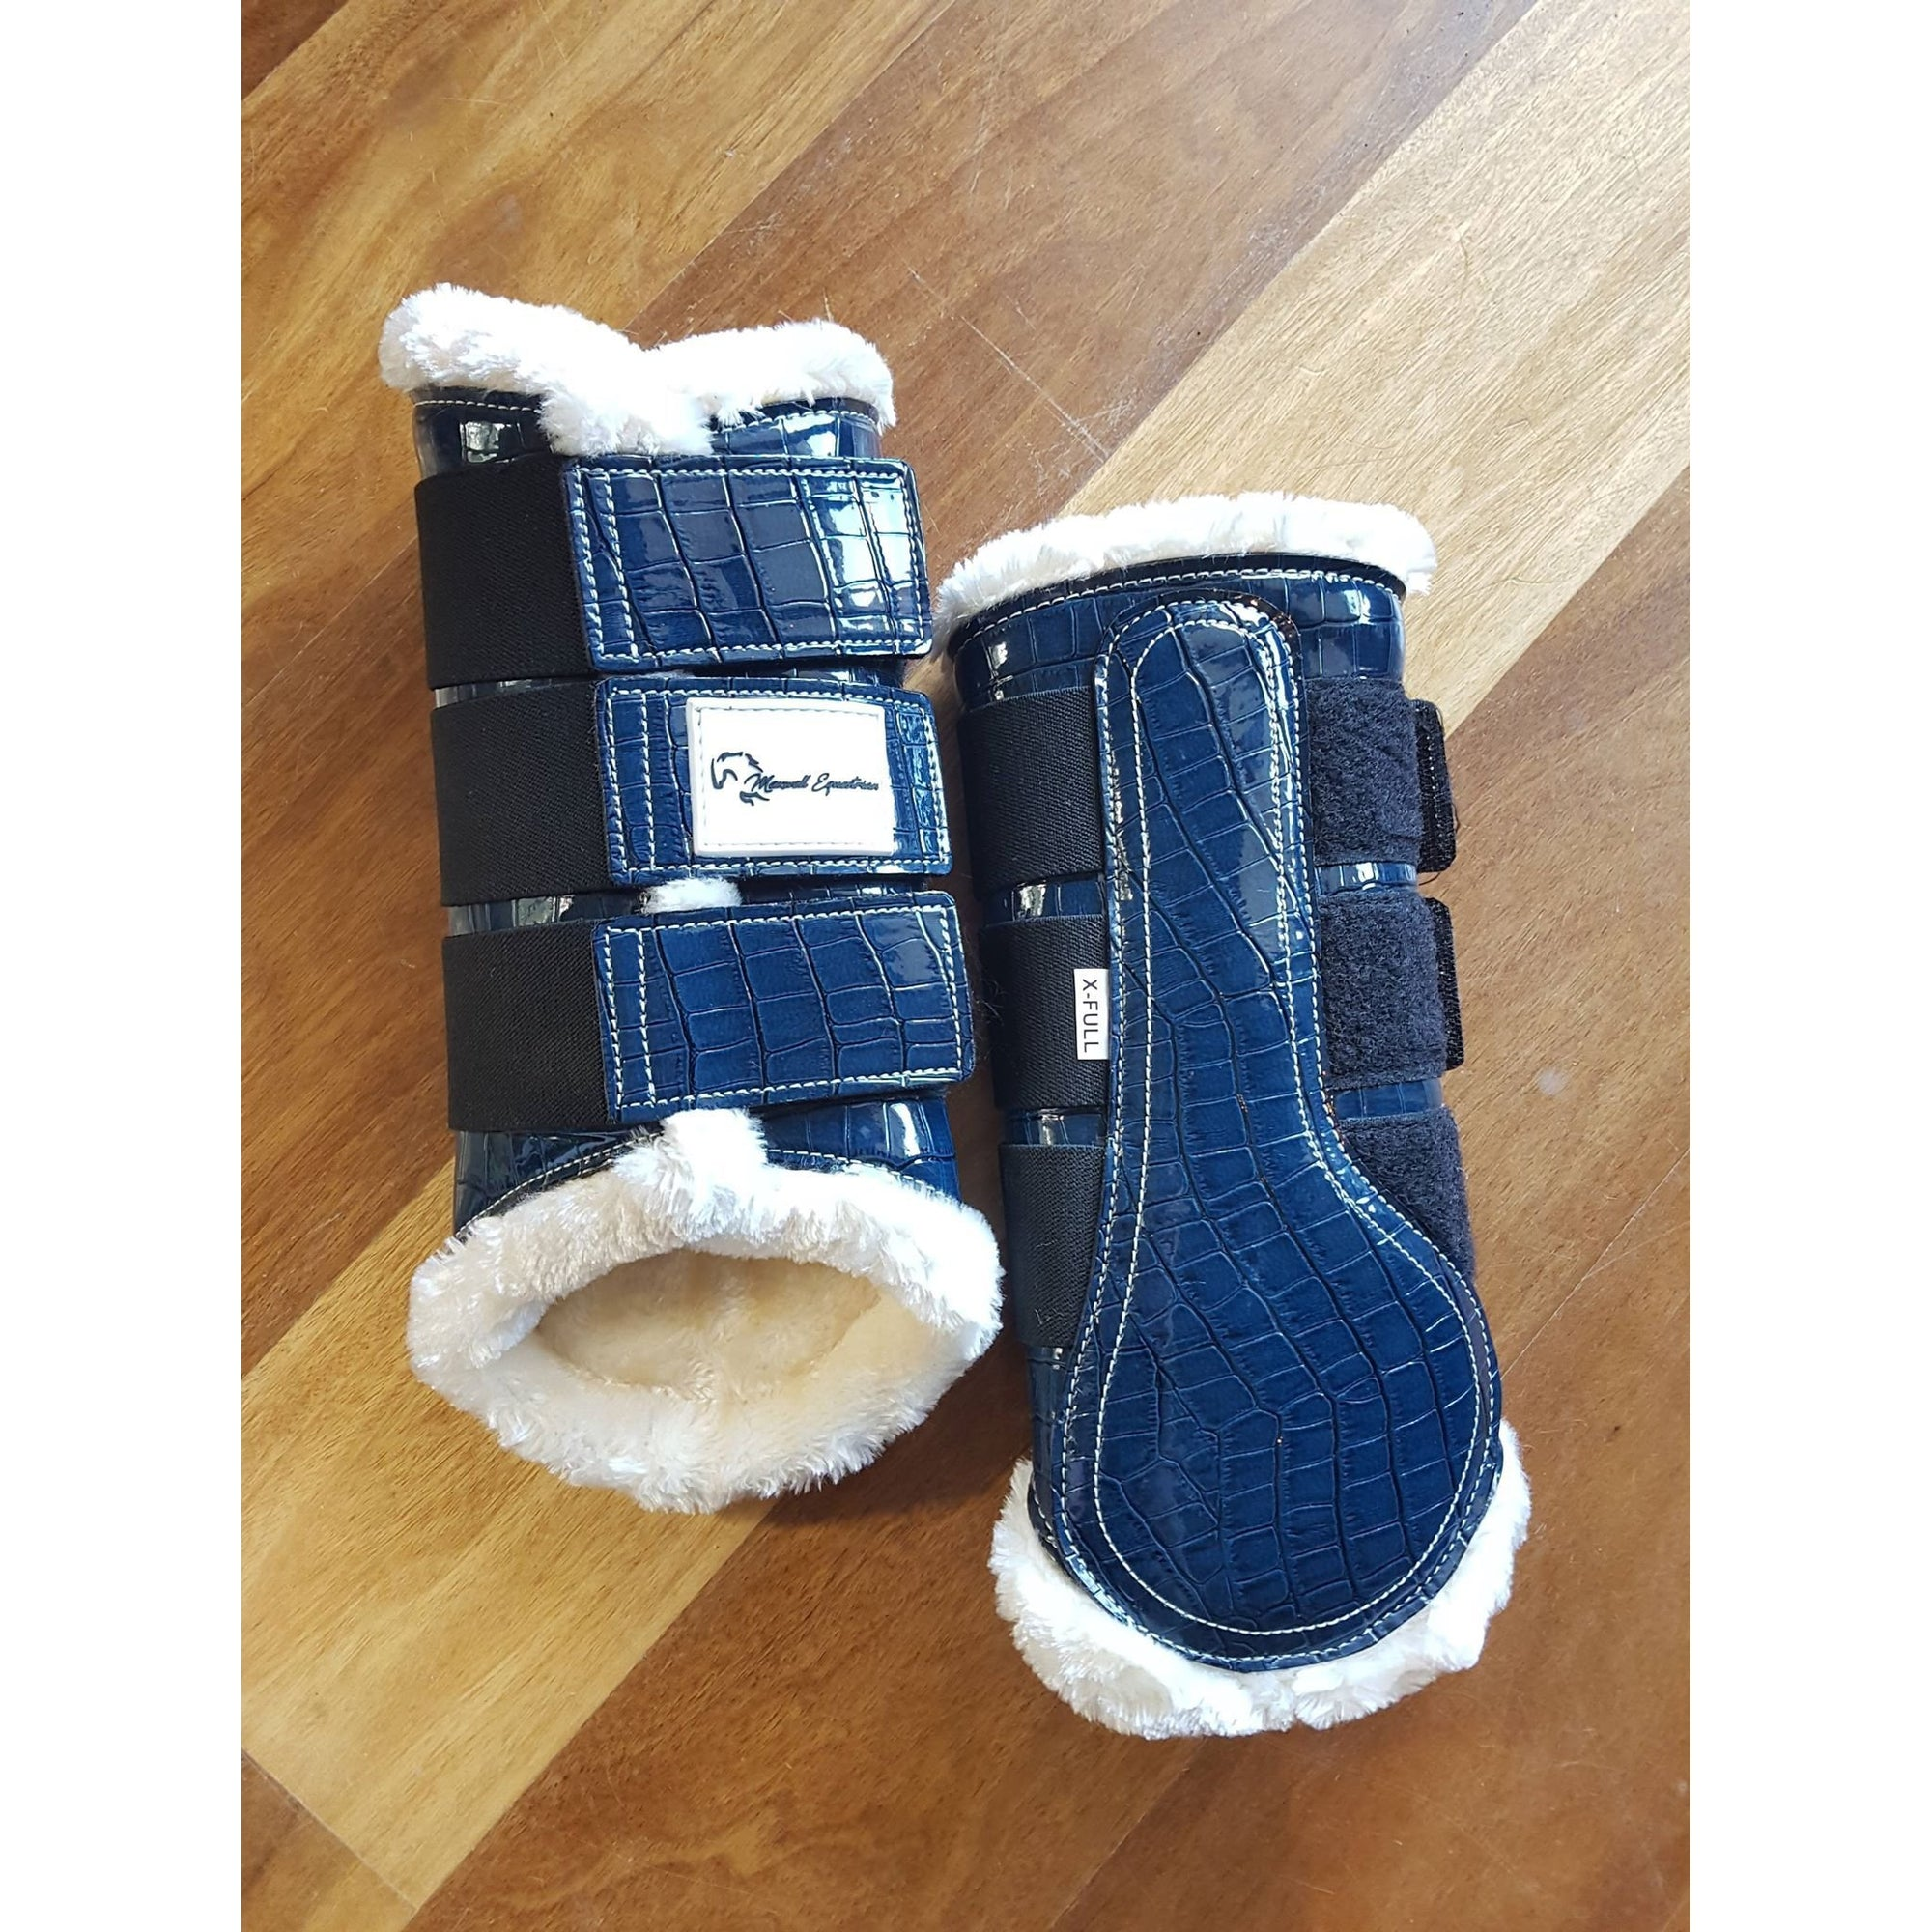 Maxwell Brushing Boots-Boot-Southern Sport Horses